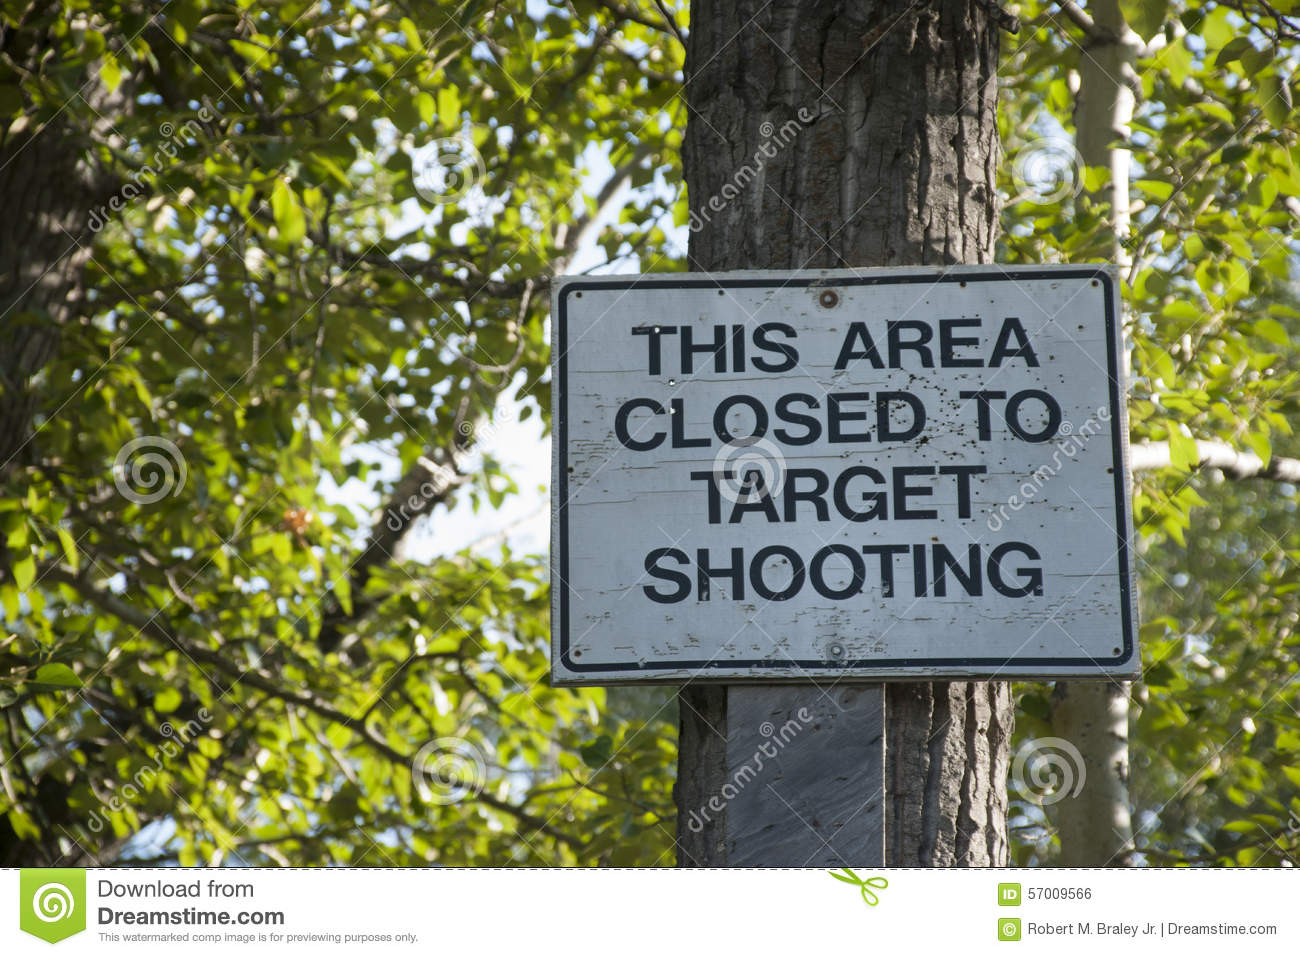 This area Closed to Target Shooting Sign